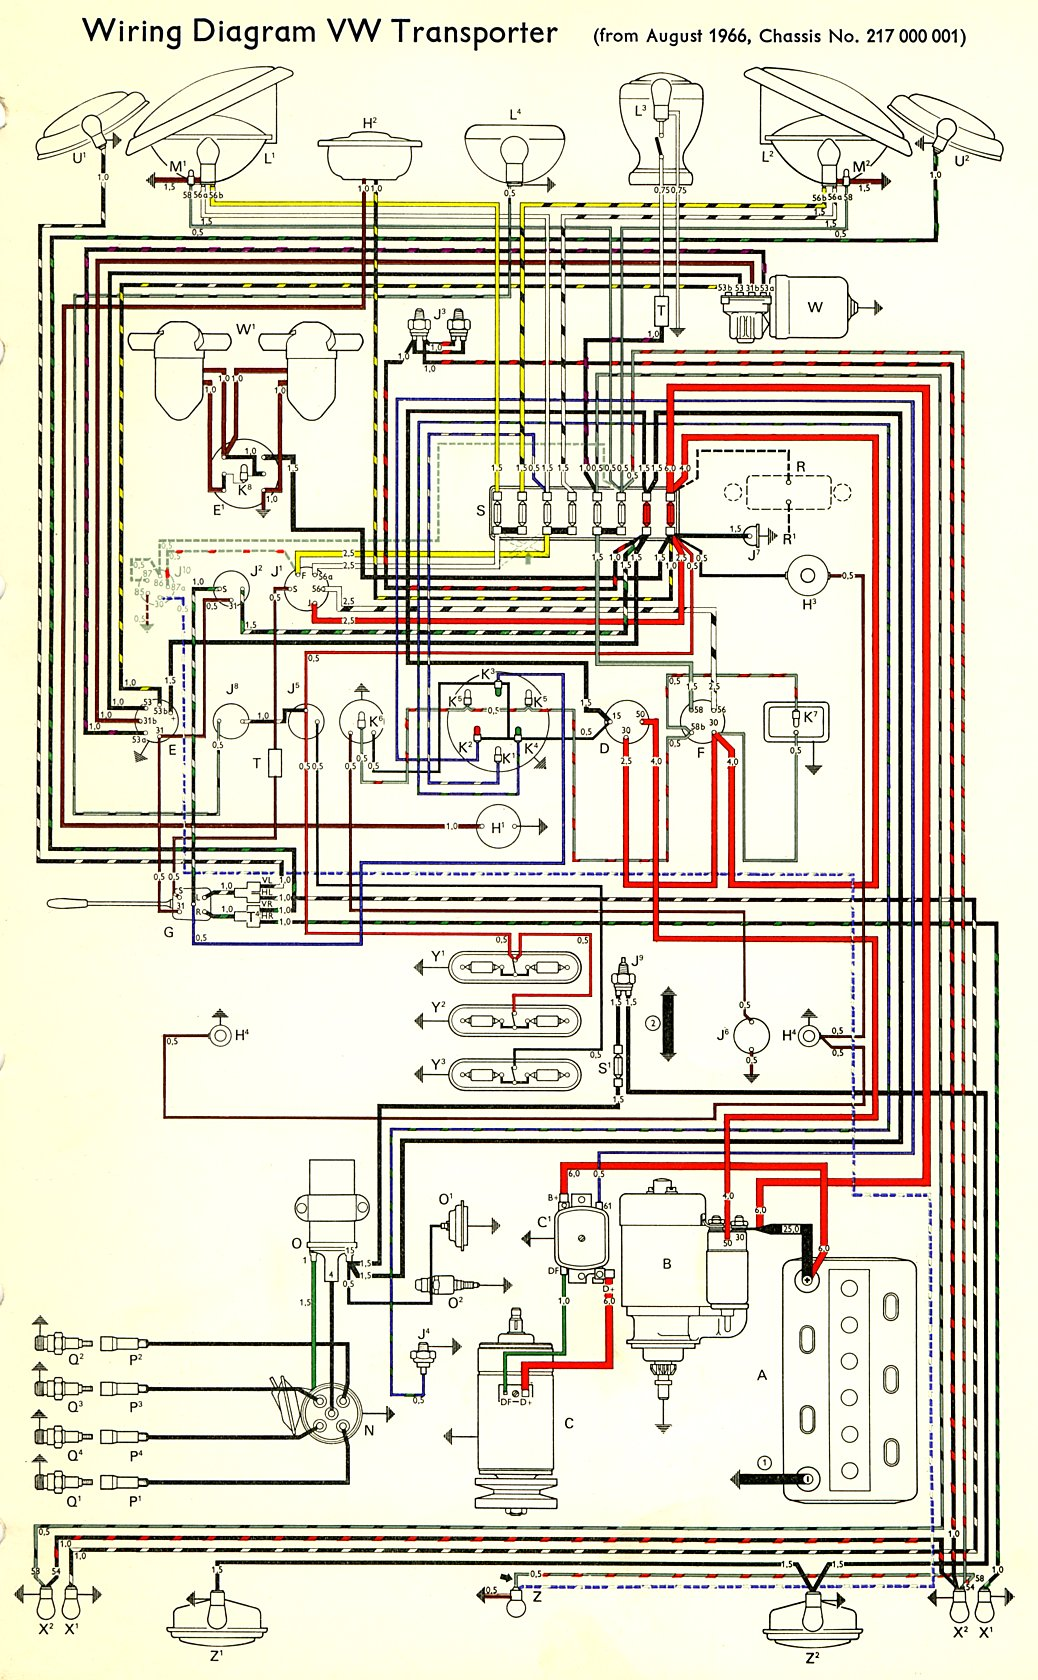 bus_67 67 vw bus wiring harness 71 vw wiring harness \u2022 wiring diagrams Wiring Harness Diagram at fashall.co